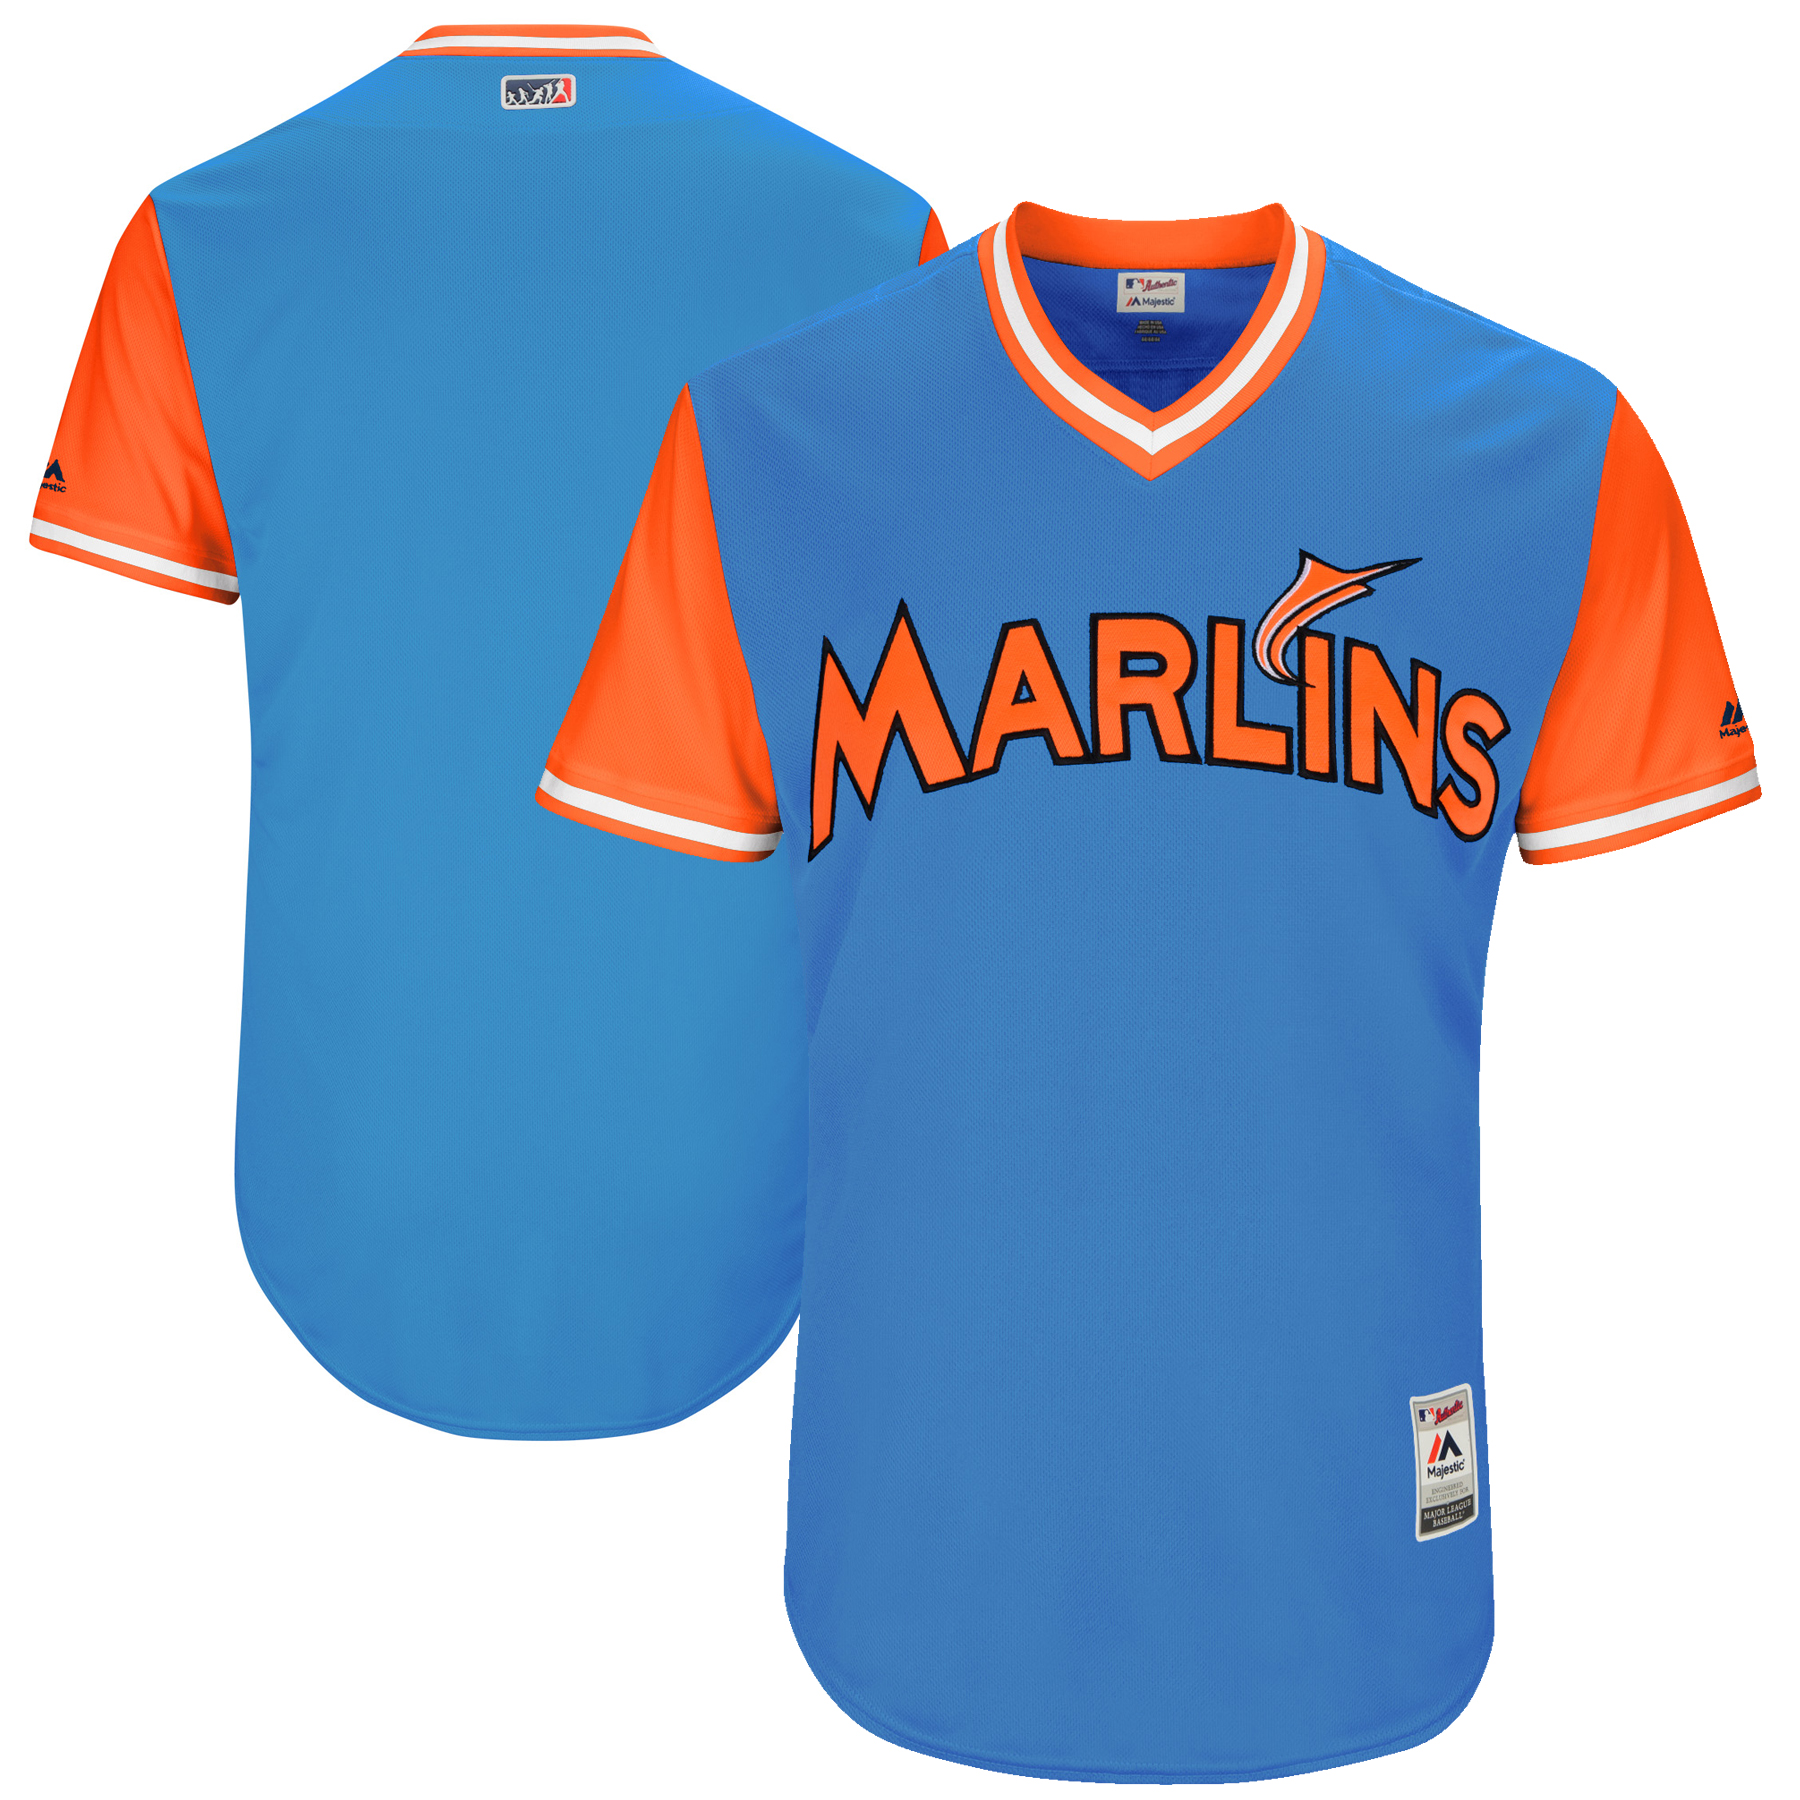 Miami Marlins Majestic 2017 Players Weekend Authentic Team Jersey - Royal